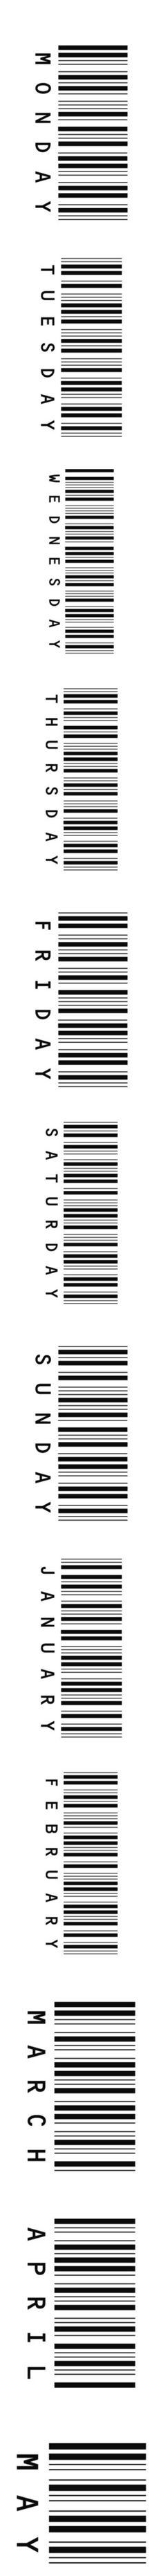 """""""Text Barcodes"""" by meowshoe ❤ liked on Polyvore featuring text, fillers, backgrounds, barcodes, quotes, phrase, saying, magazine, words and headline"""